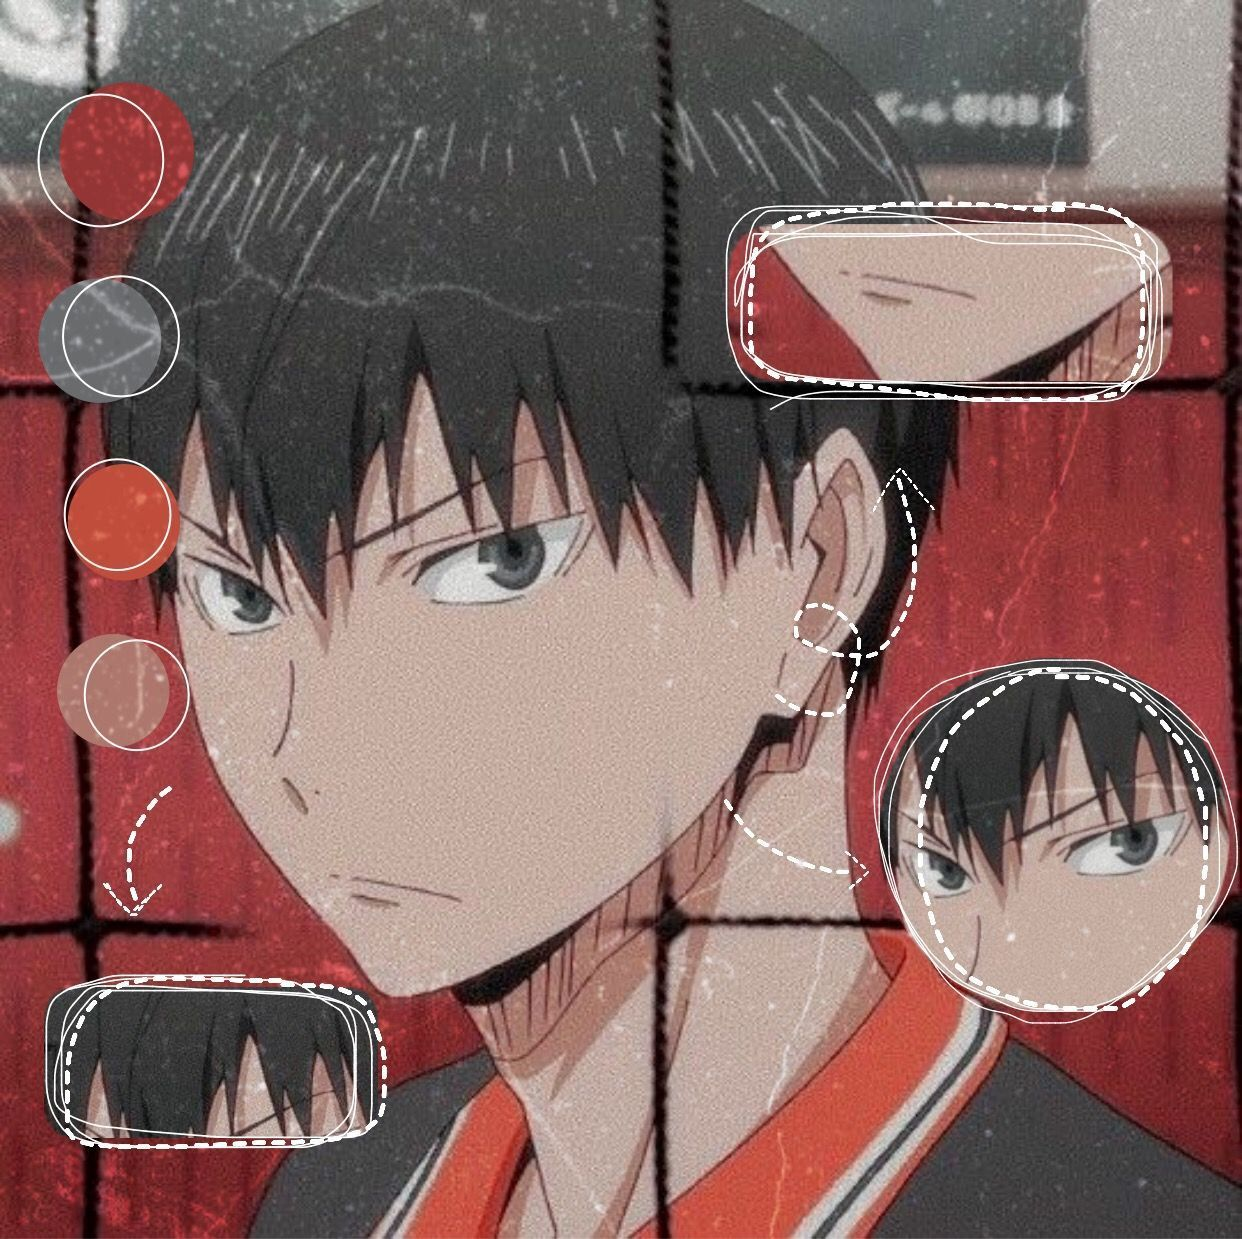 Sport Sport Sport Aesthetic Sportaesthetic Tags Sportbasketball Sportvolleyball Sportsoccer Sportwear In 2020 Haikyuu Anime Anime Cute Anime Wallpaper